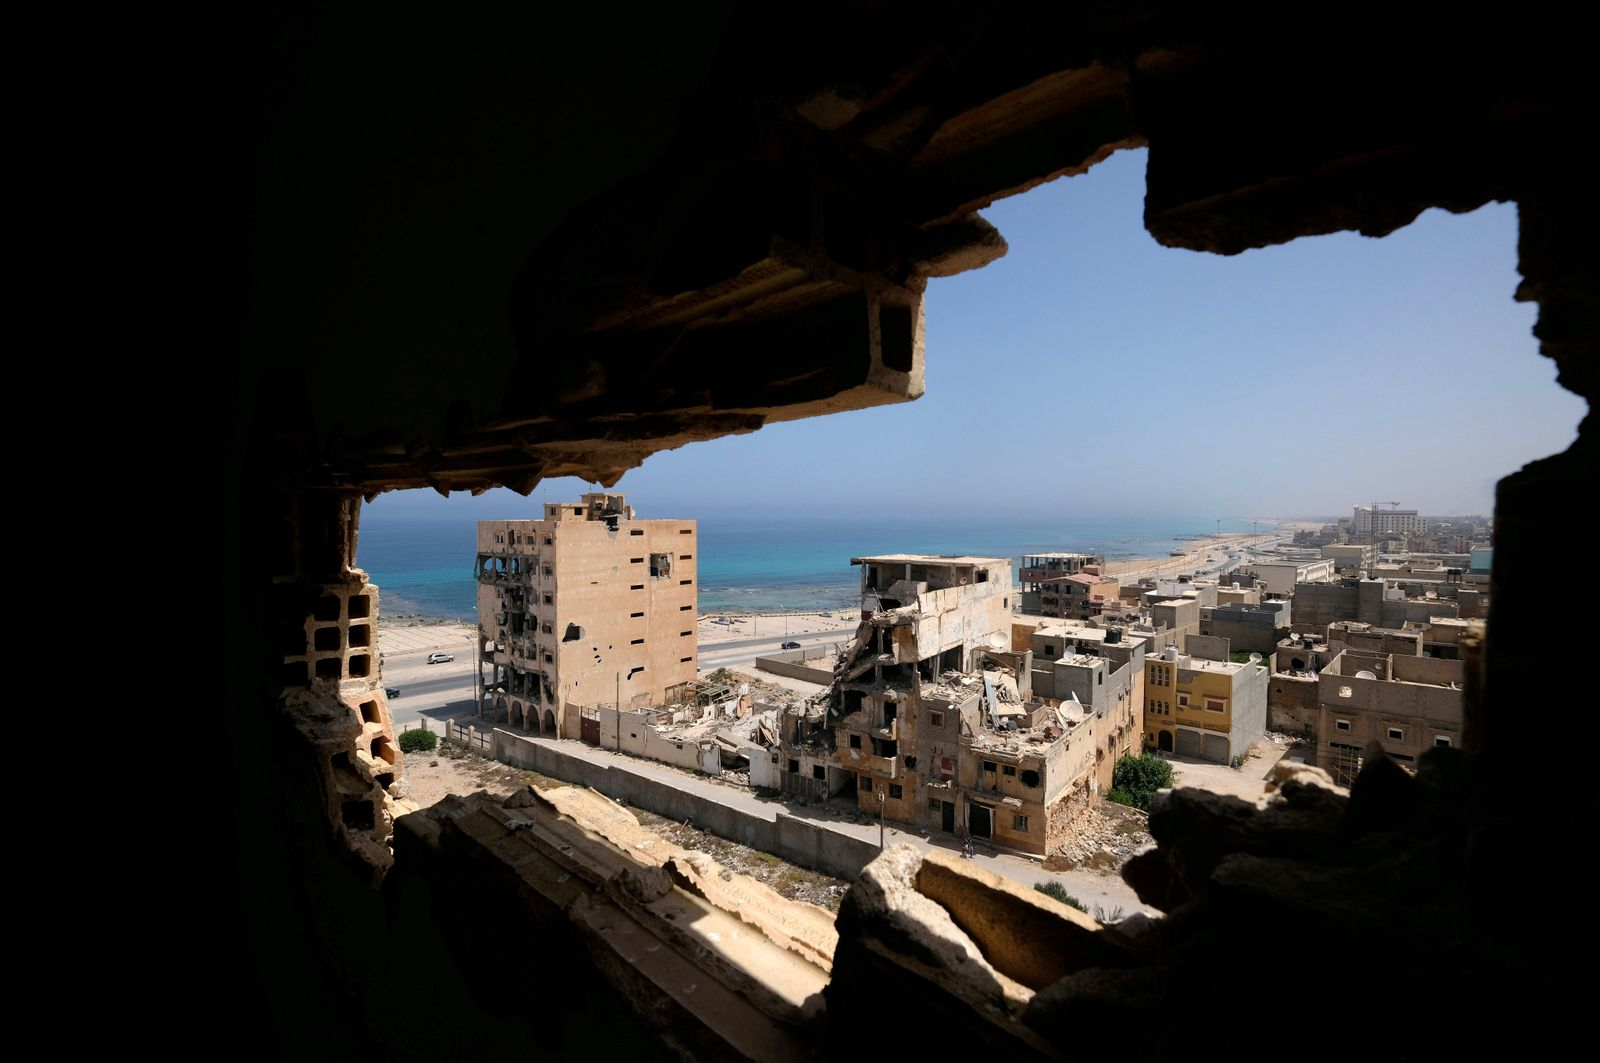 Destroyed buildings are seen through a hole in Benghazi lighthouse after it was severely damaged by years of armed conflict, in Benghazi